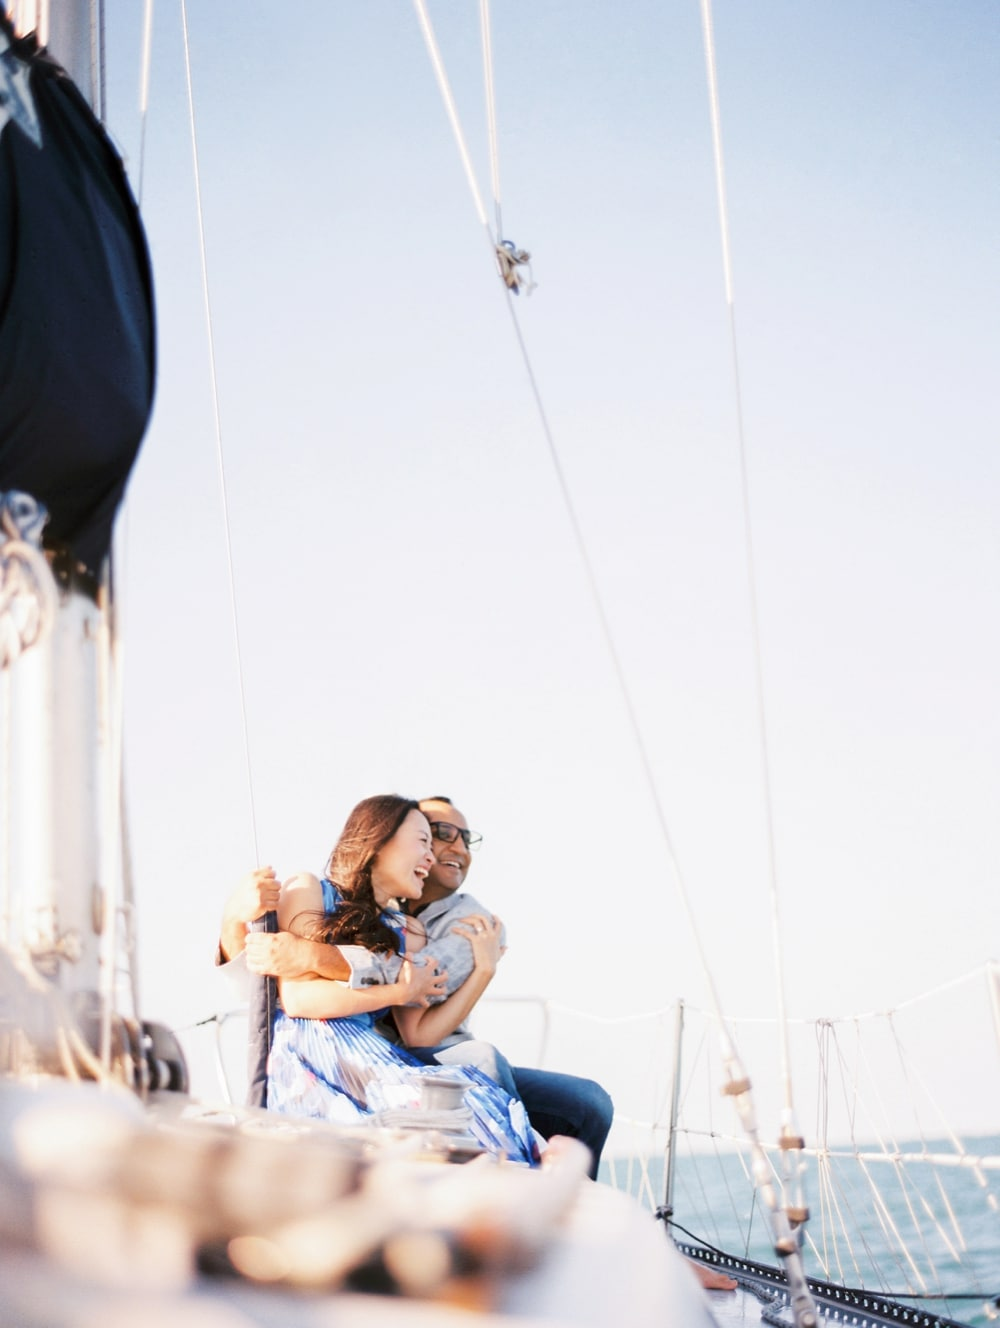 kristin-la-voie-photography-Chicago-wedding-photographer-lake-michigan-sailing-2